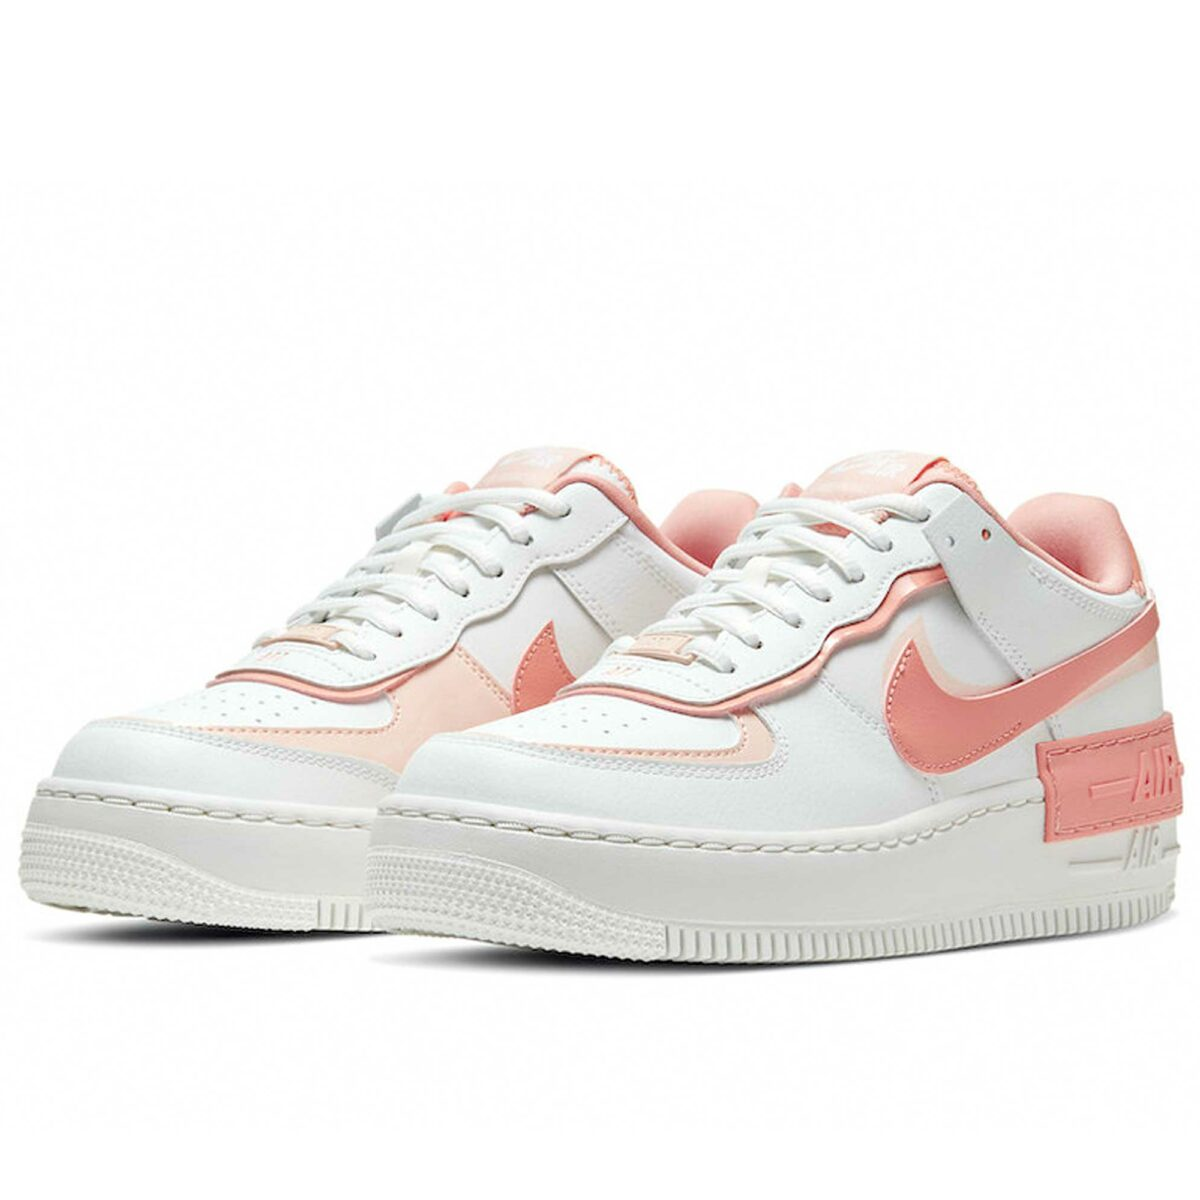 nike air force 1 shadow white pink CJ1641_101 купить